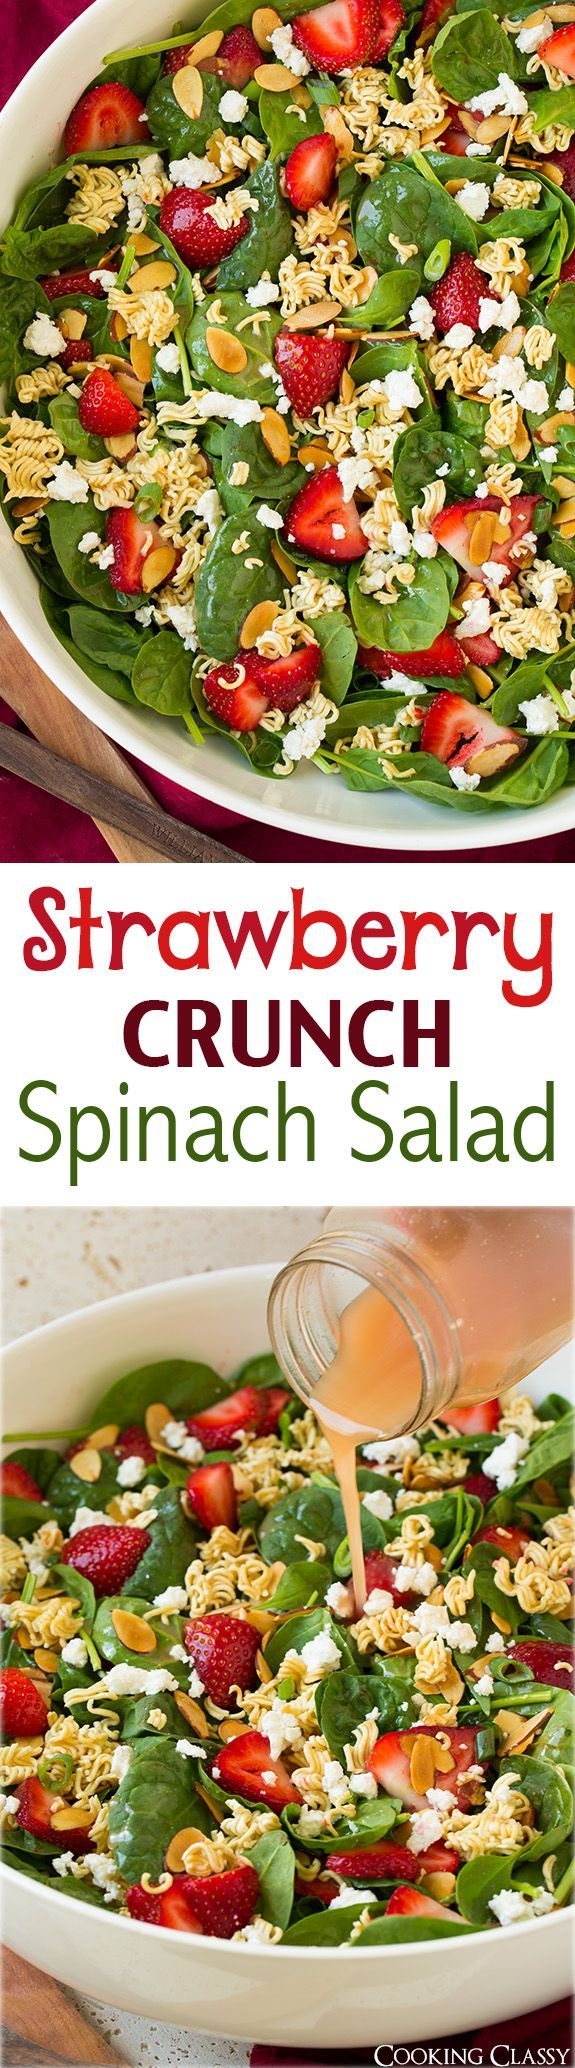 Strawberry Crunch Spinach Salad - Cooking Classy